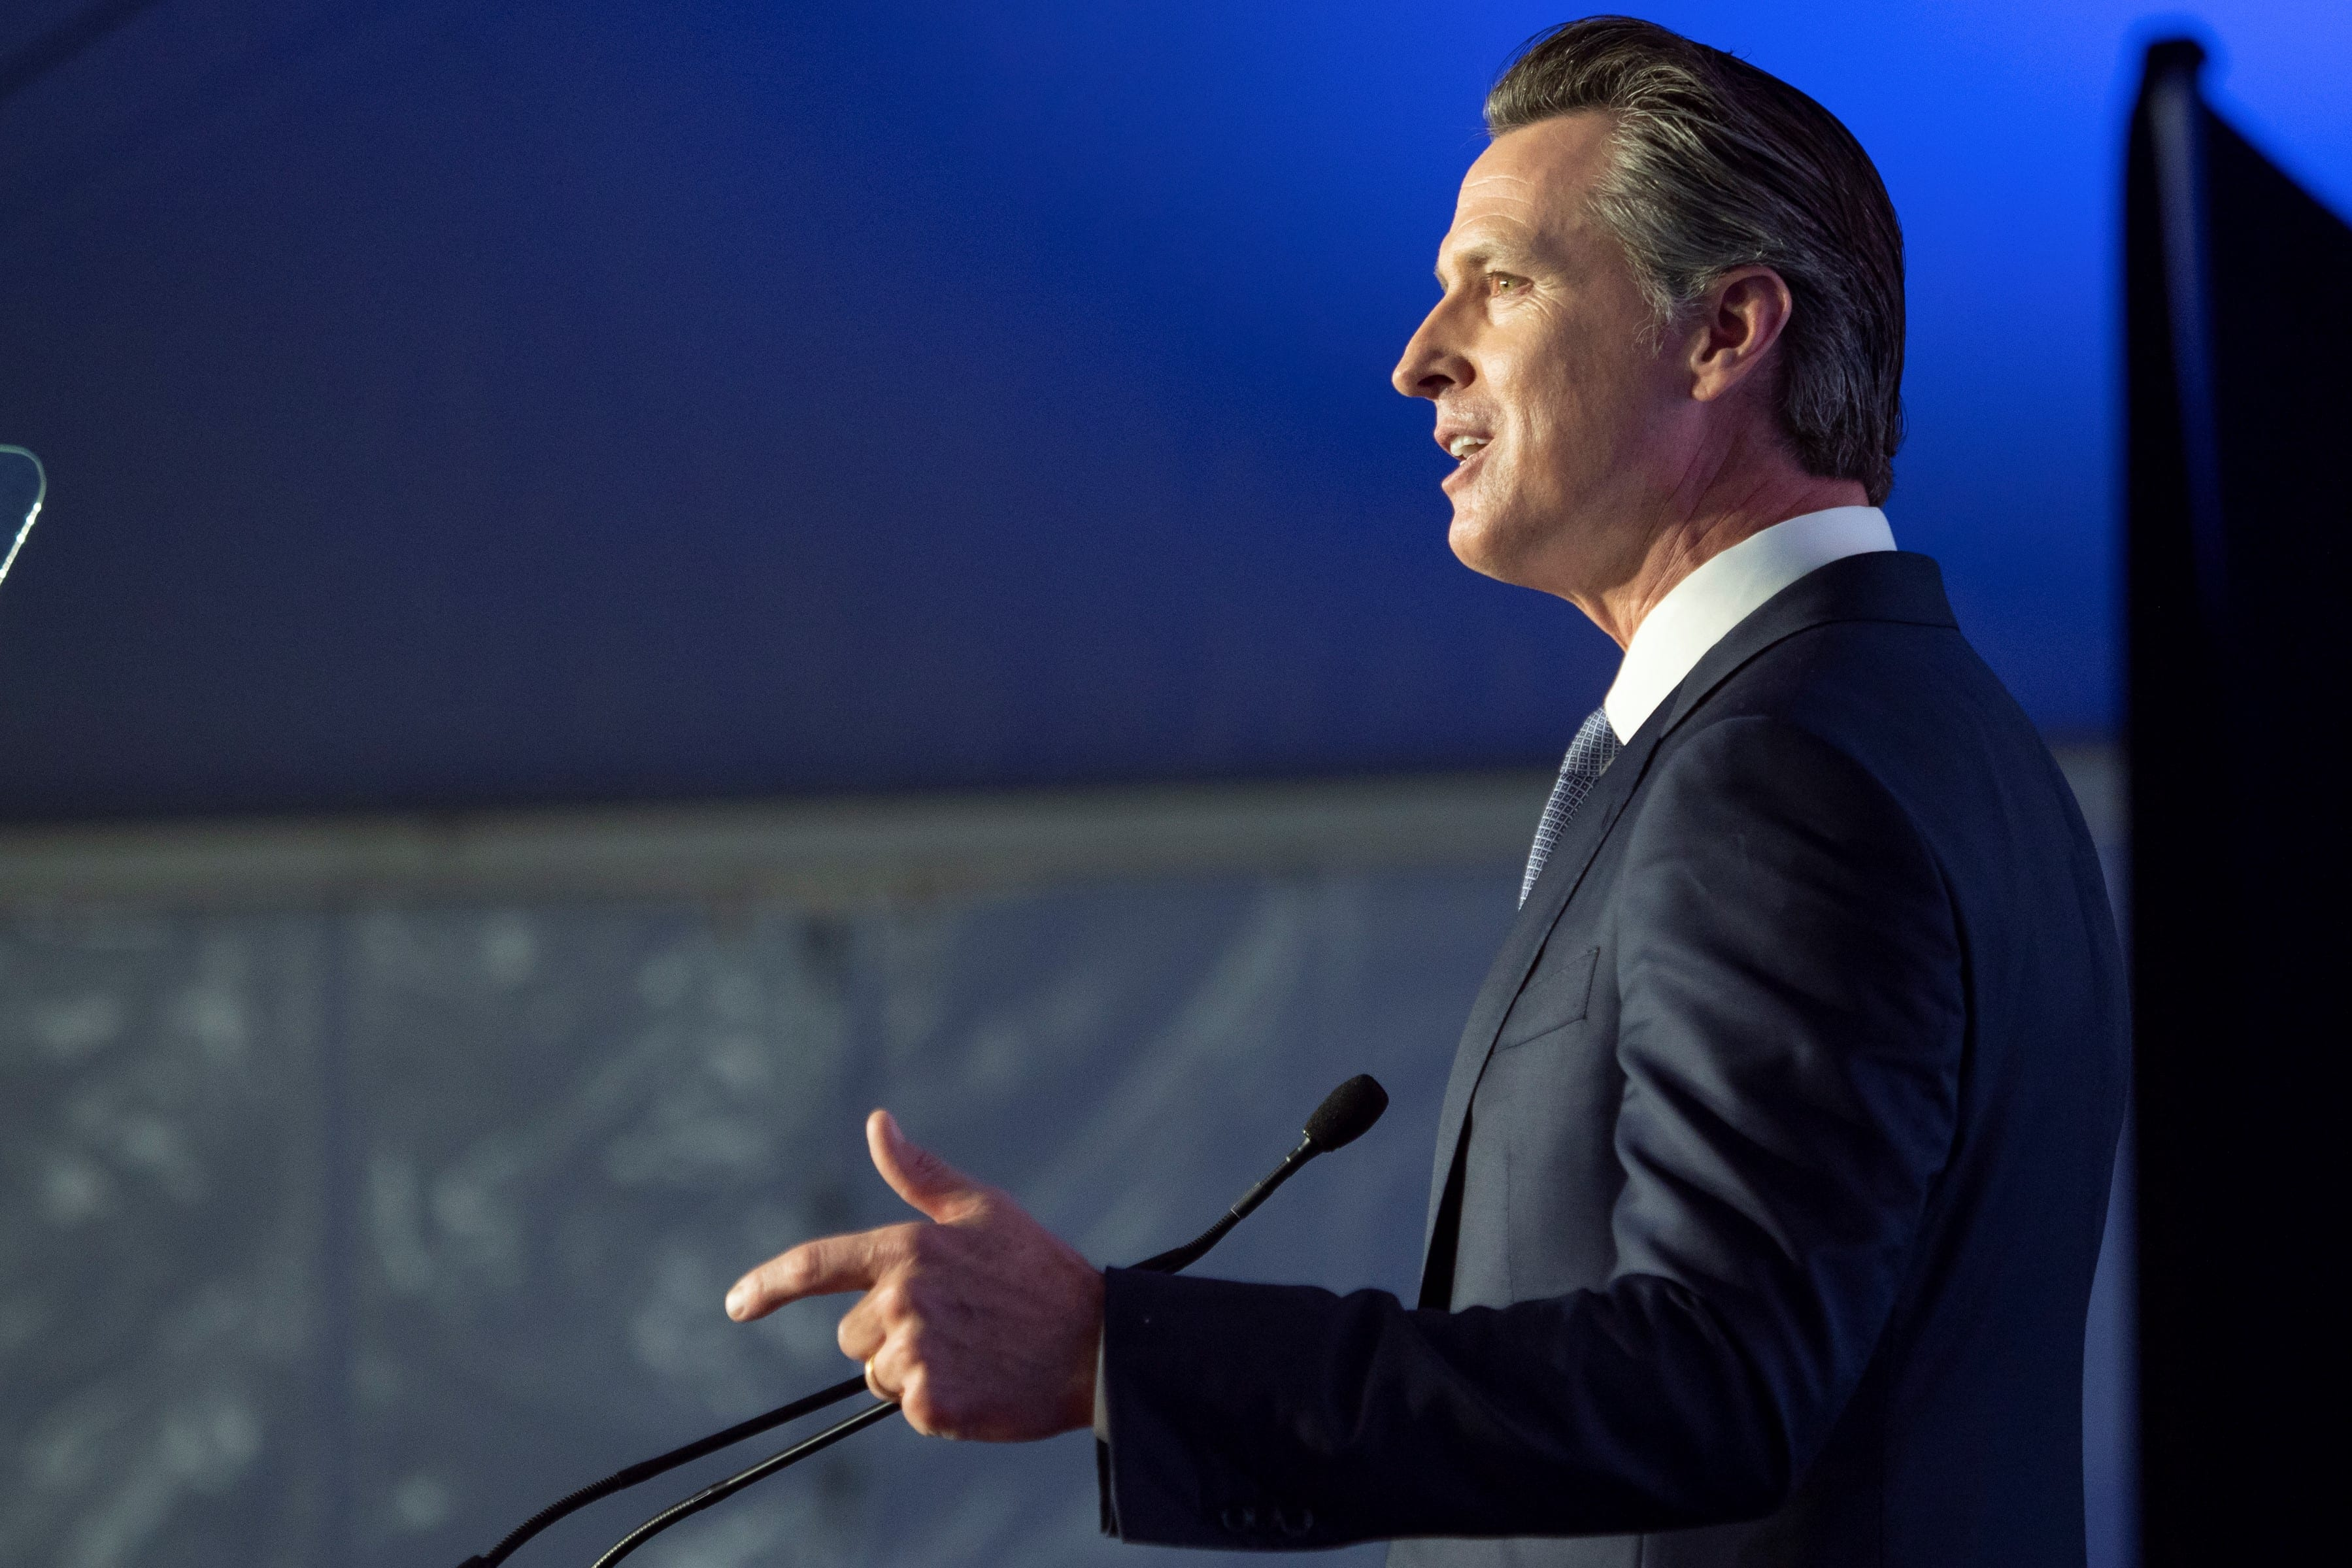 Governor Newsom to Deliver State of the State Address Next Week 2.14.20